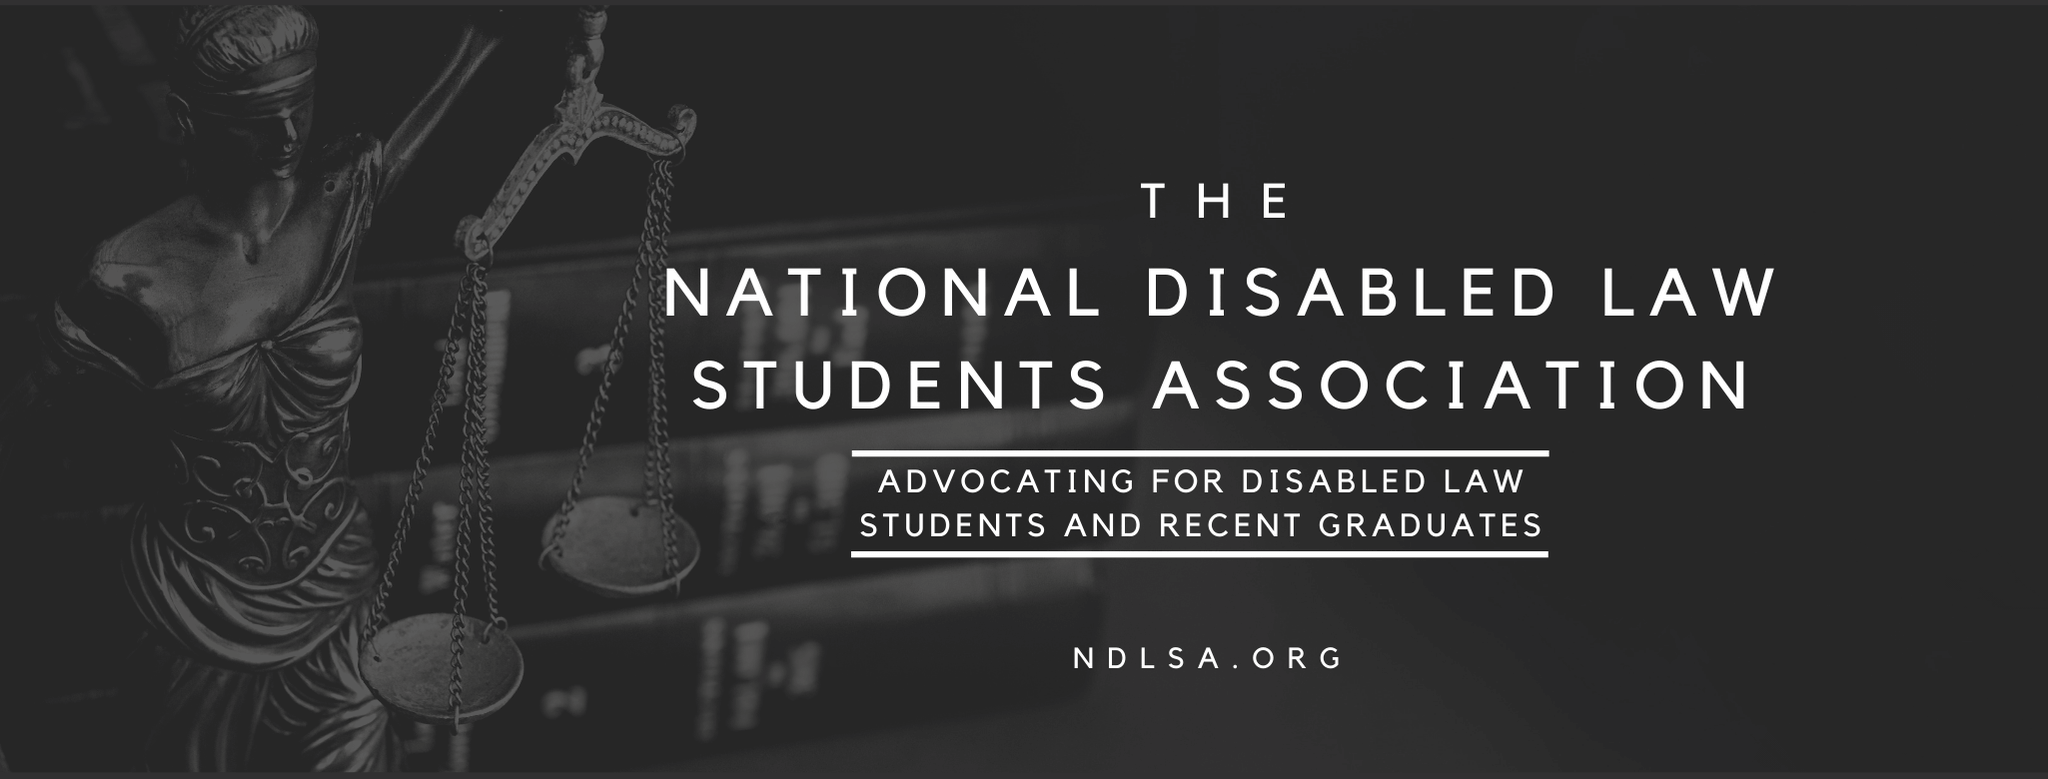 NDLSA: National Disabled Law Students Association image showing the scales of justice